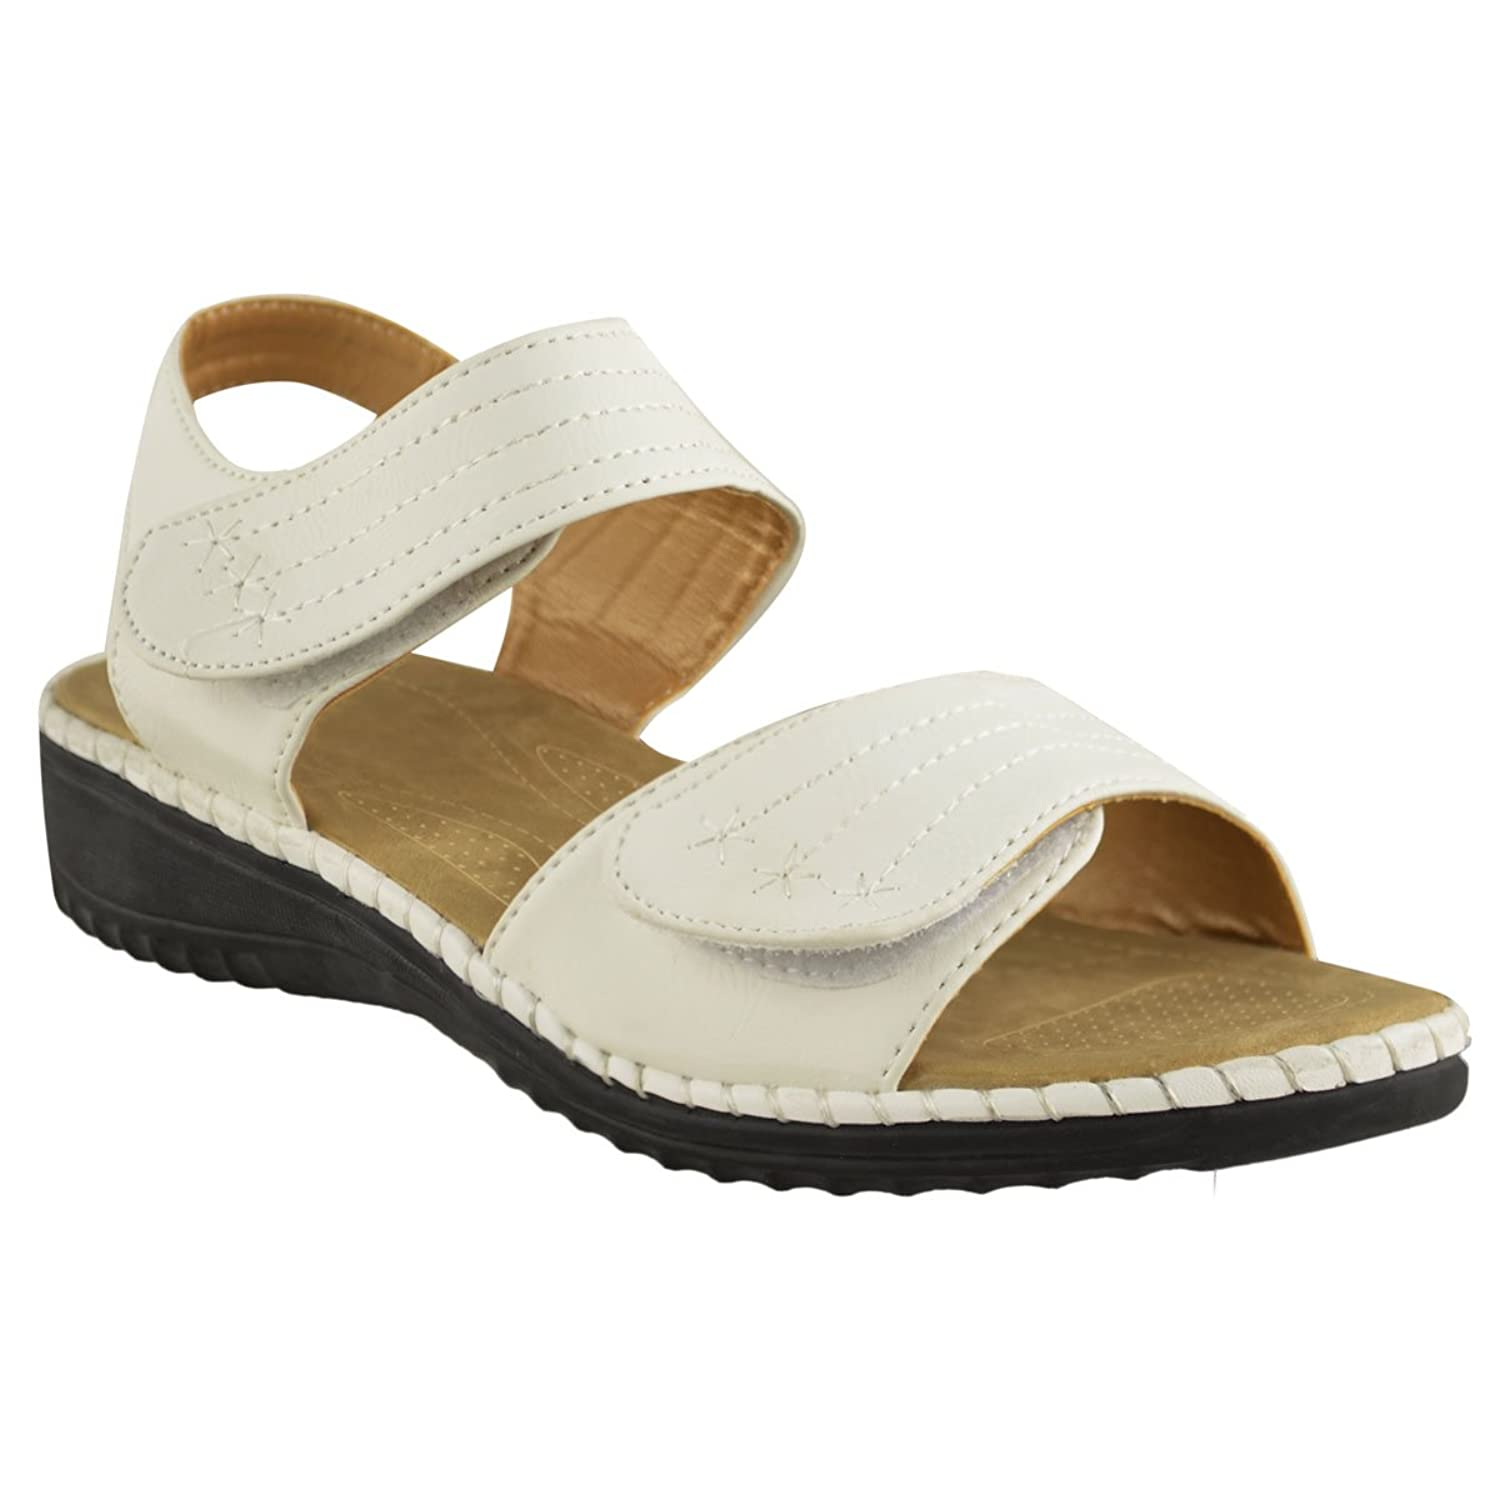 Womens sandals uk office